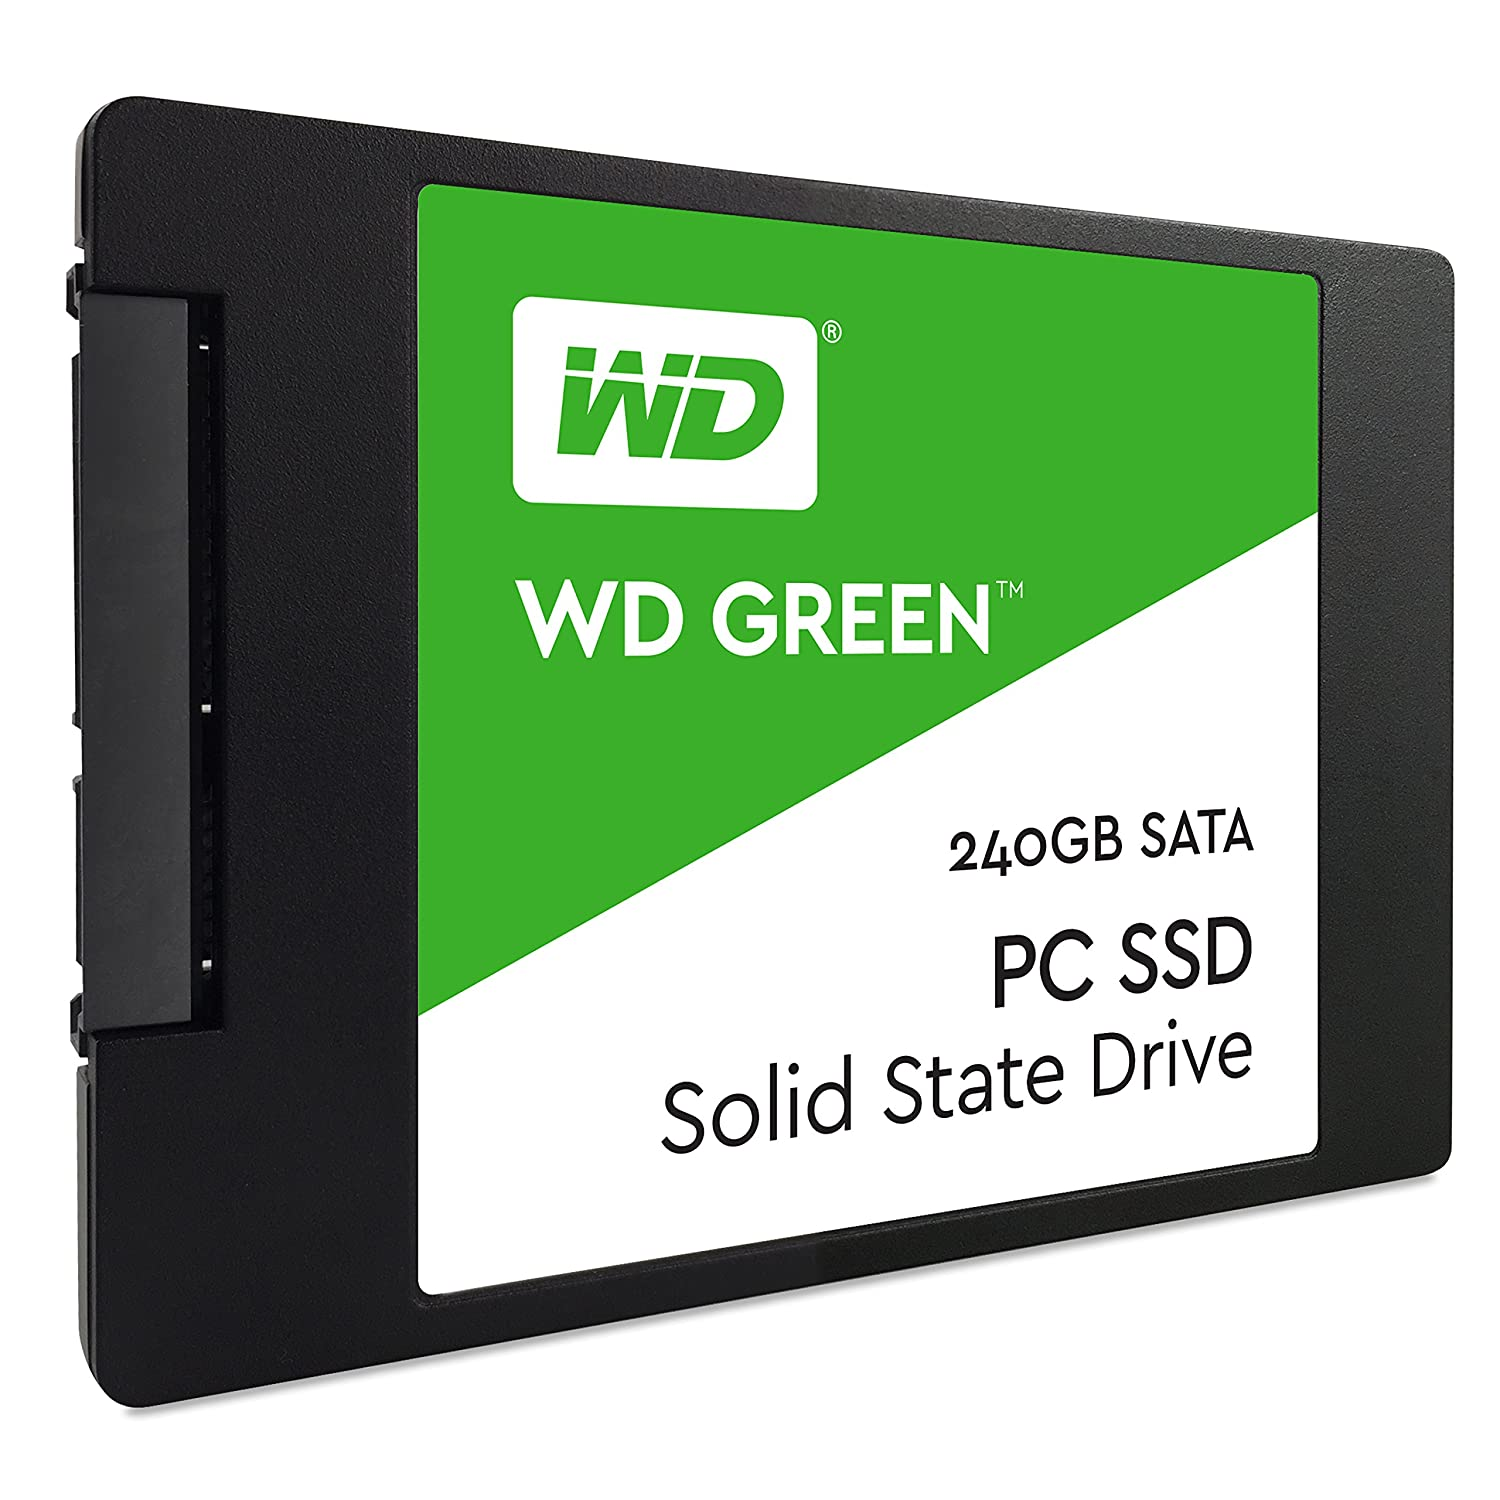 4813df2be8dbd8 Amazon.in  Buy Western Digital WDS240G1G0A 240GB Internal Solid State Drive  (Green) Online at Low Prices in India   Western Digital Reviews   Ratings